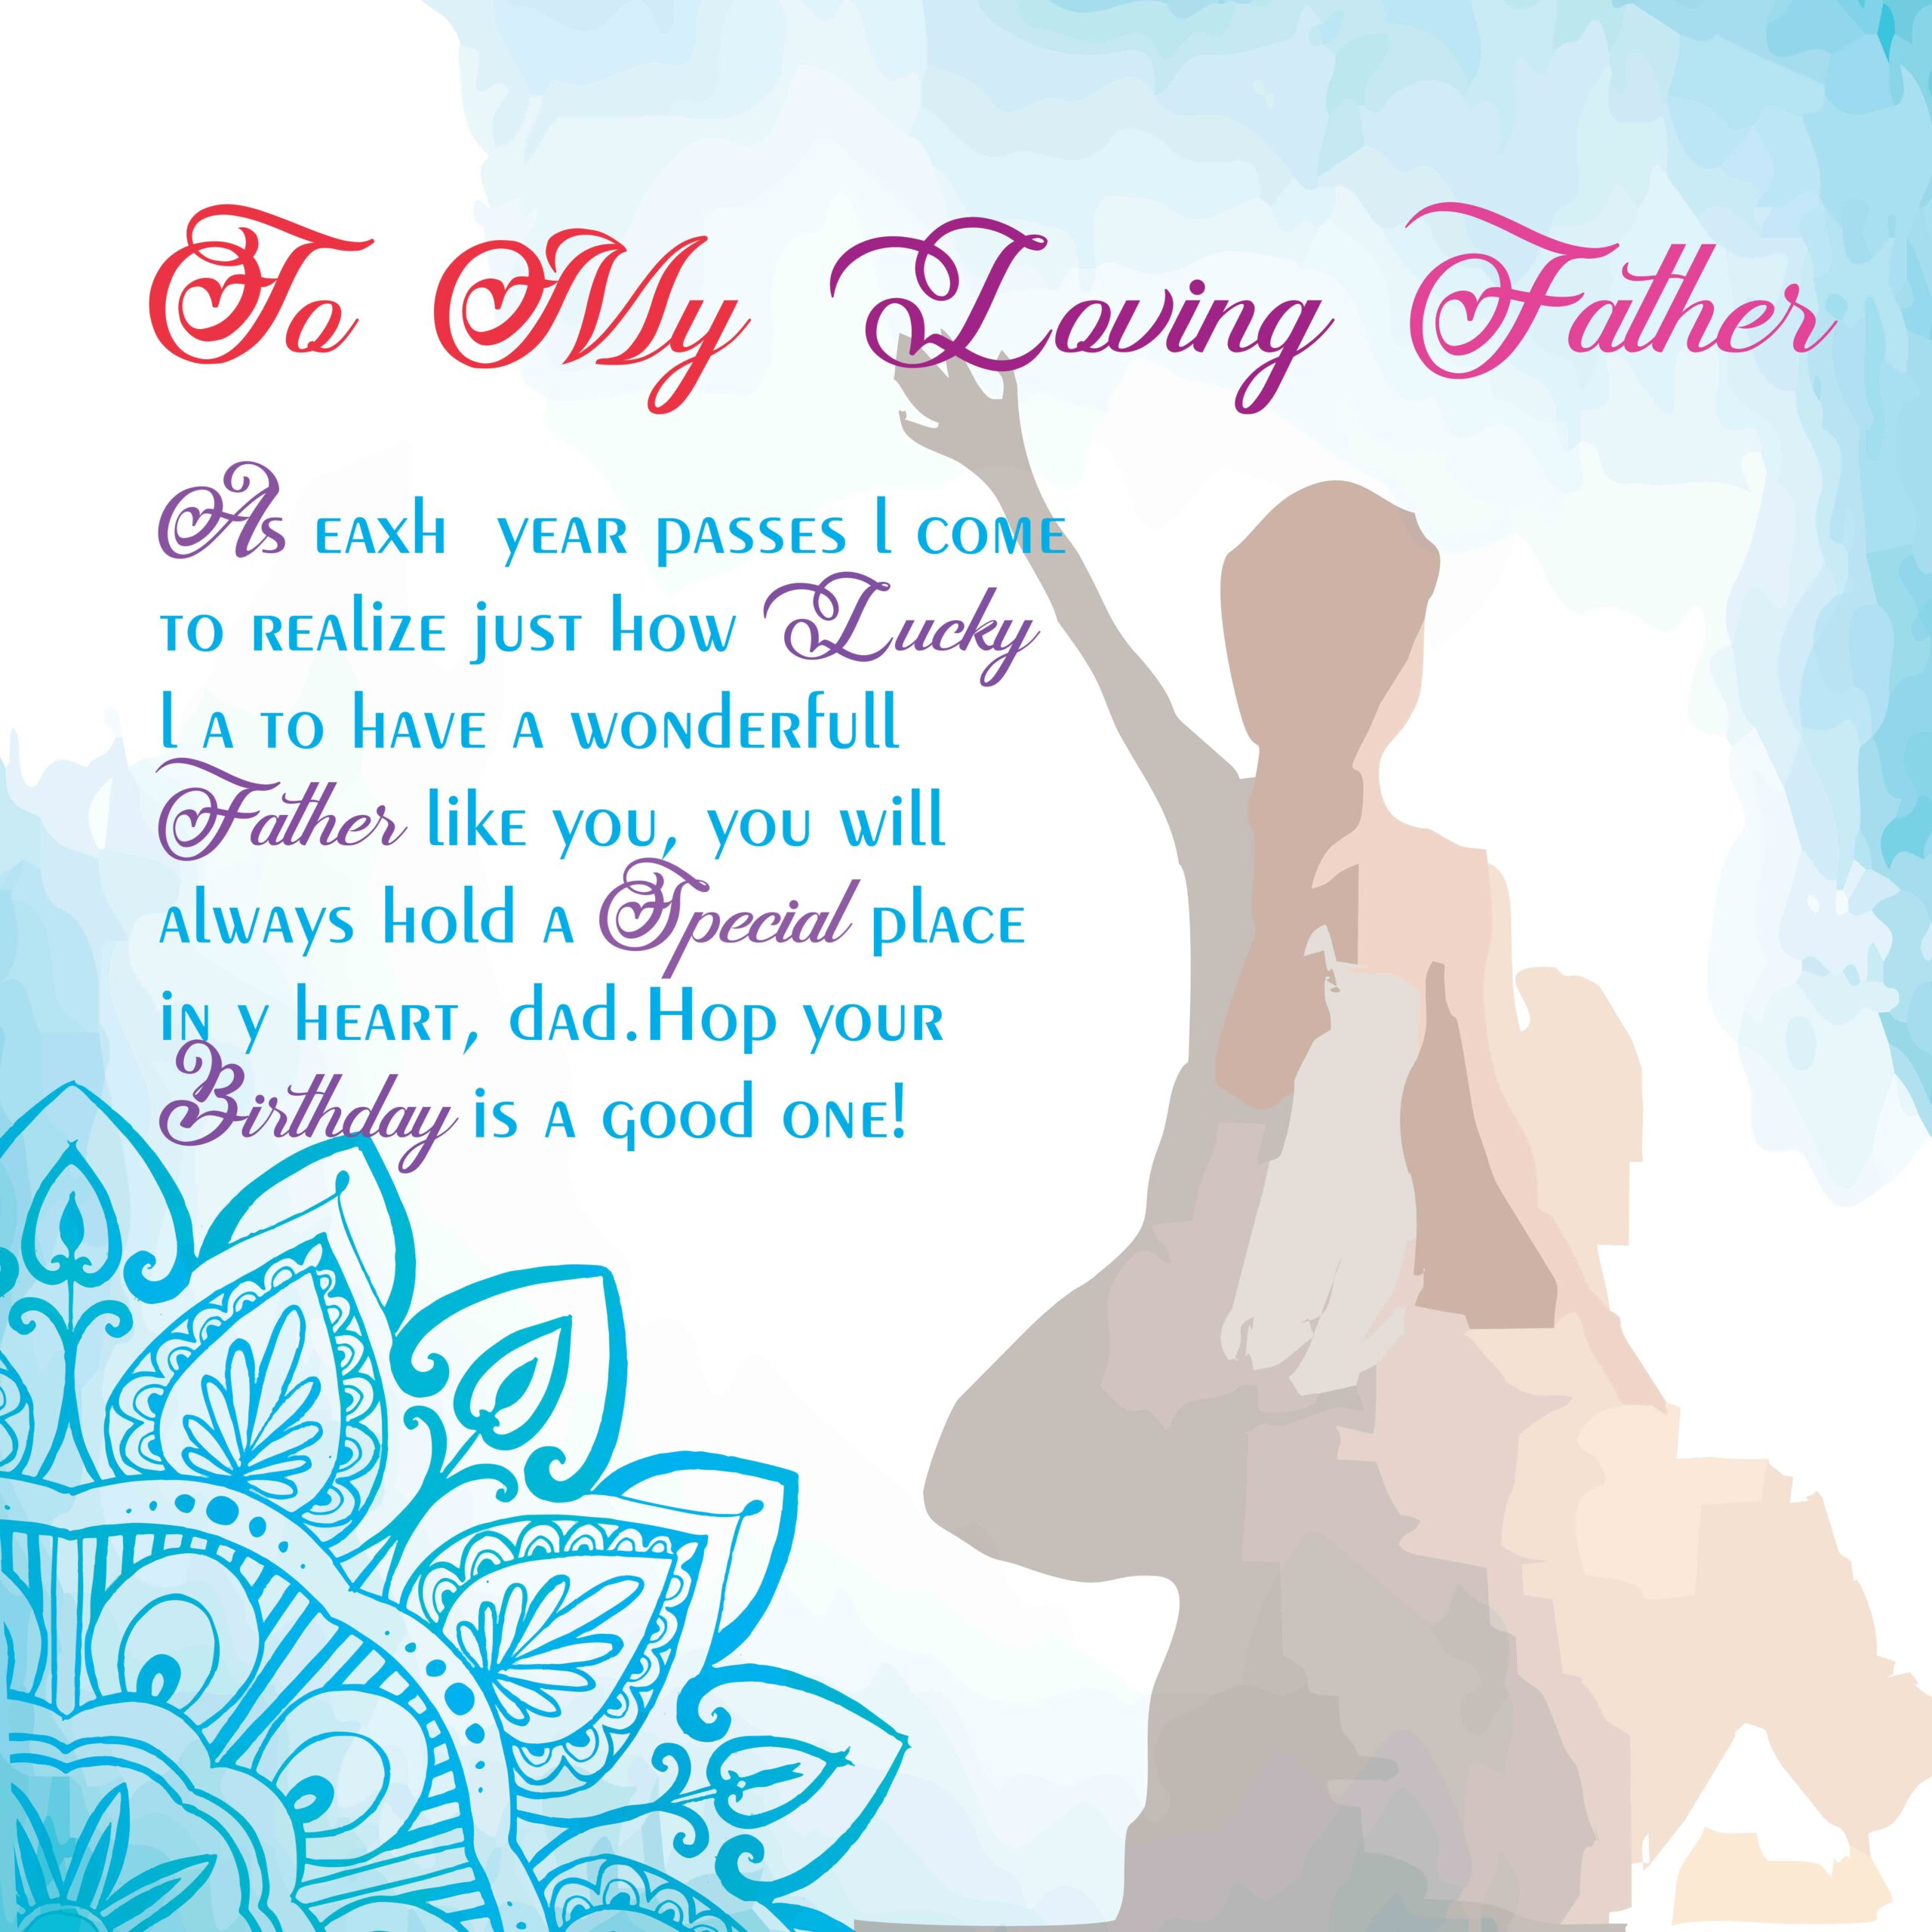 HAPPY-BIRTHDAY-WISHES-FOR-FATHER-CARD